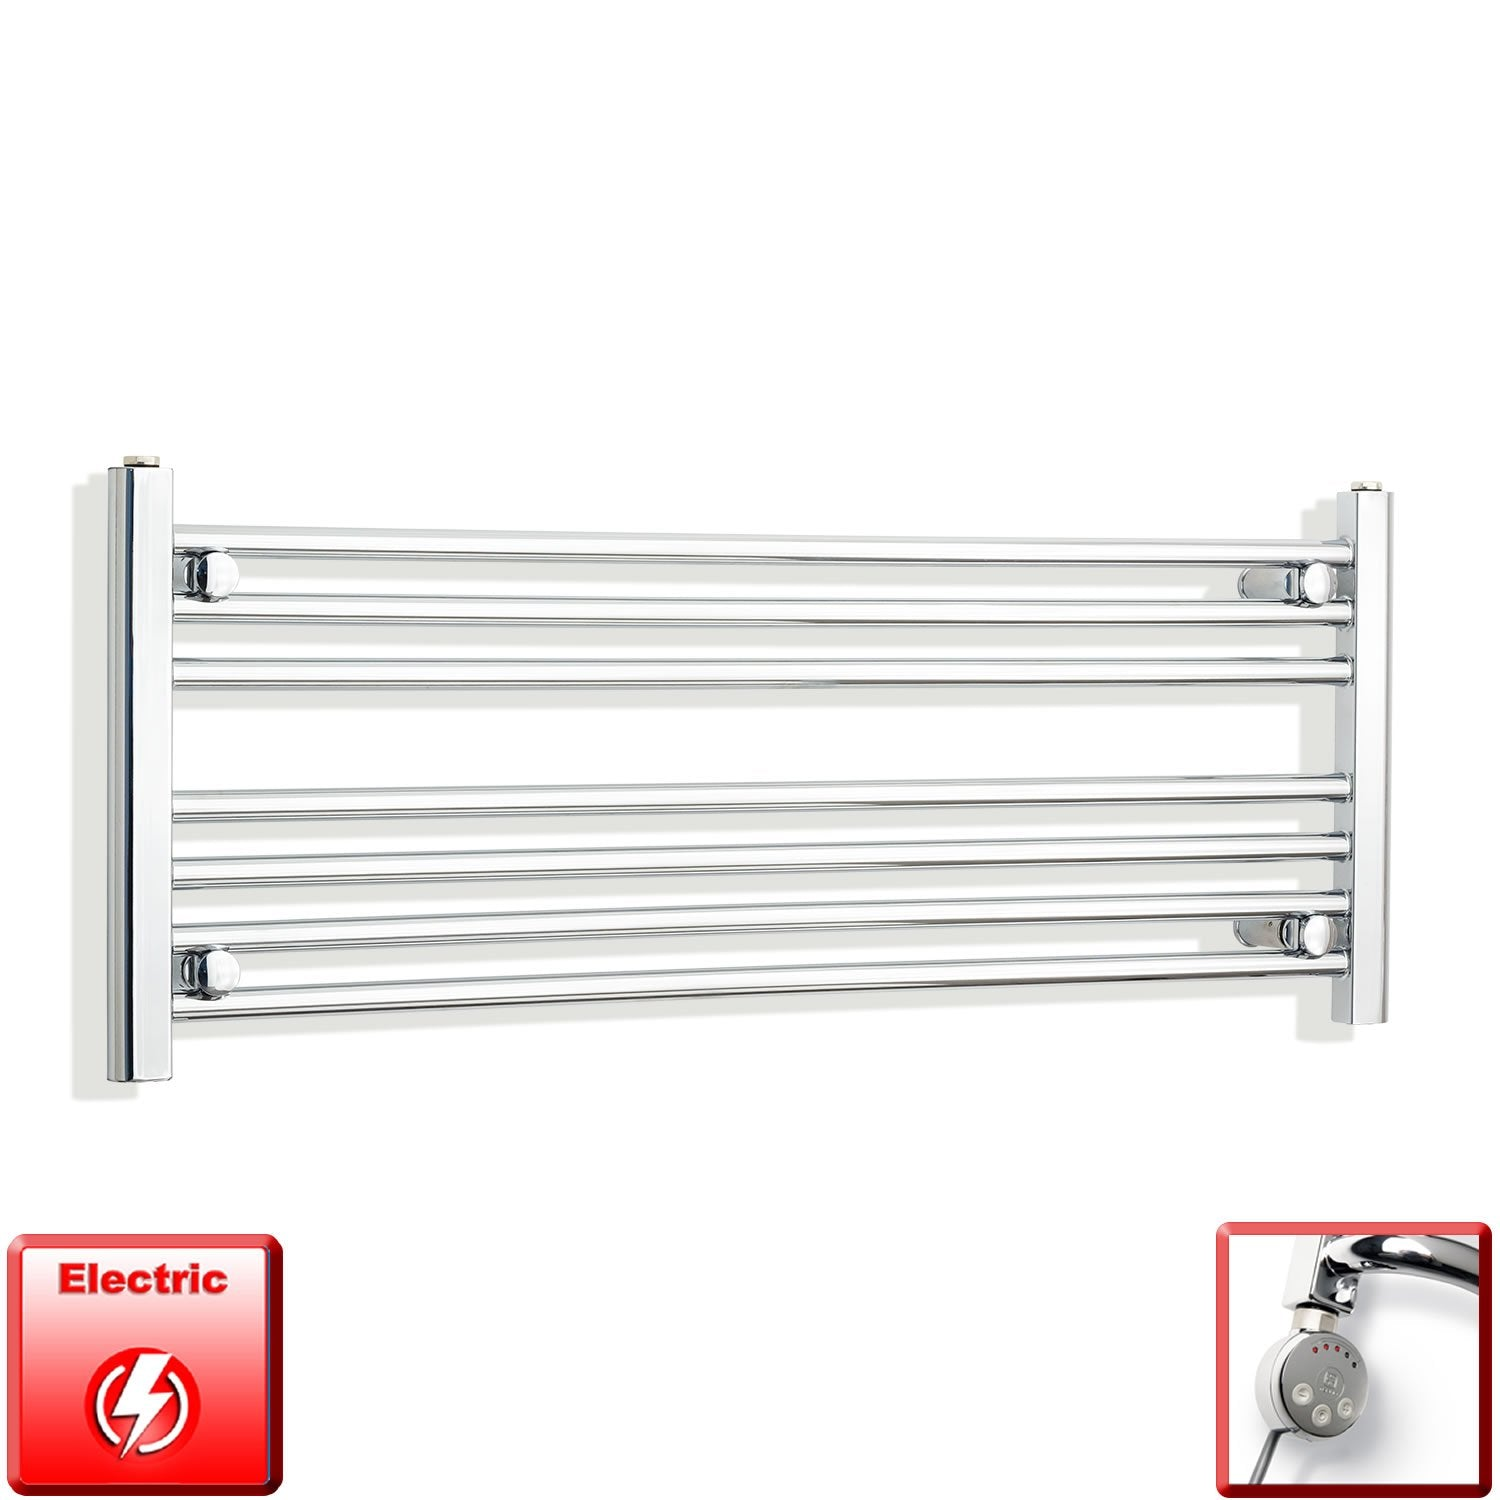 1100mm Wide 400mm High Flat Chrome Pre-Filled Electric Heated Towel Rail Radiator HTR,MEG Thermostatic Element